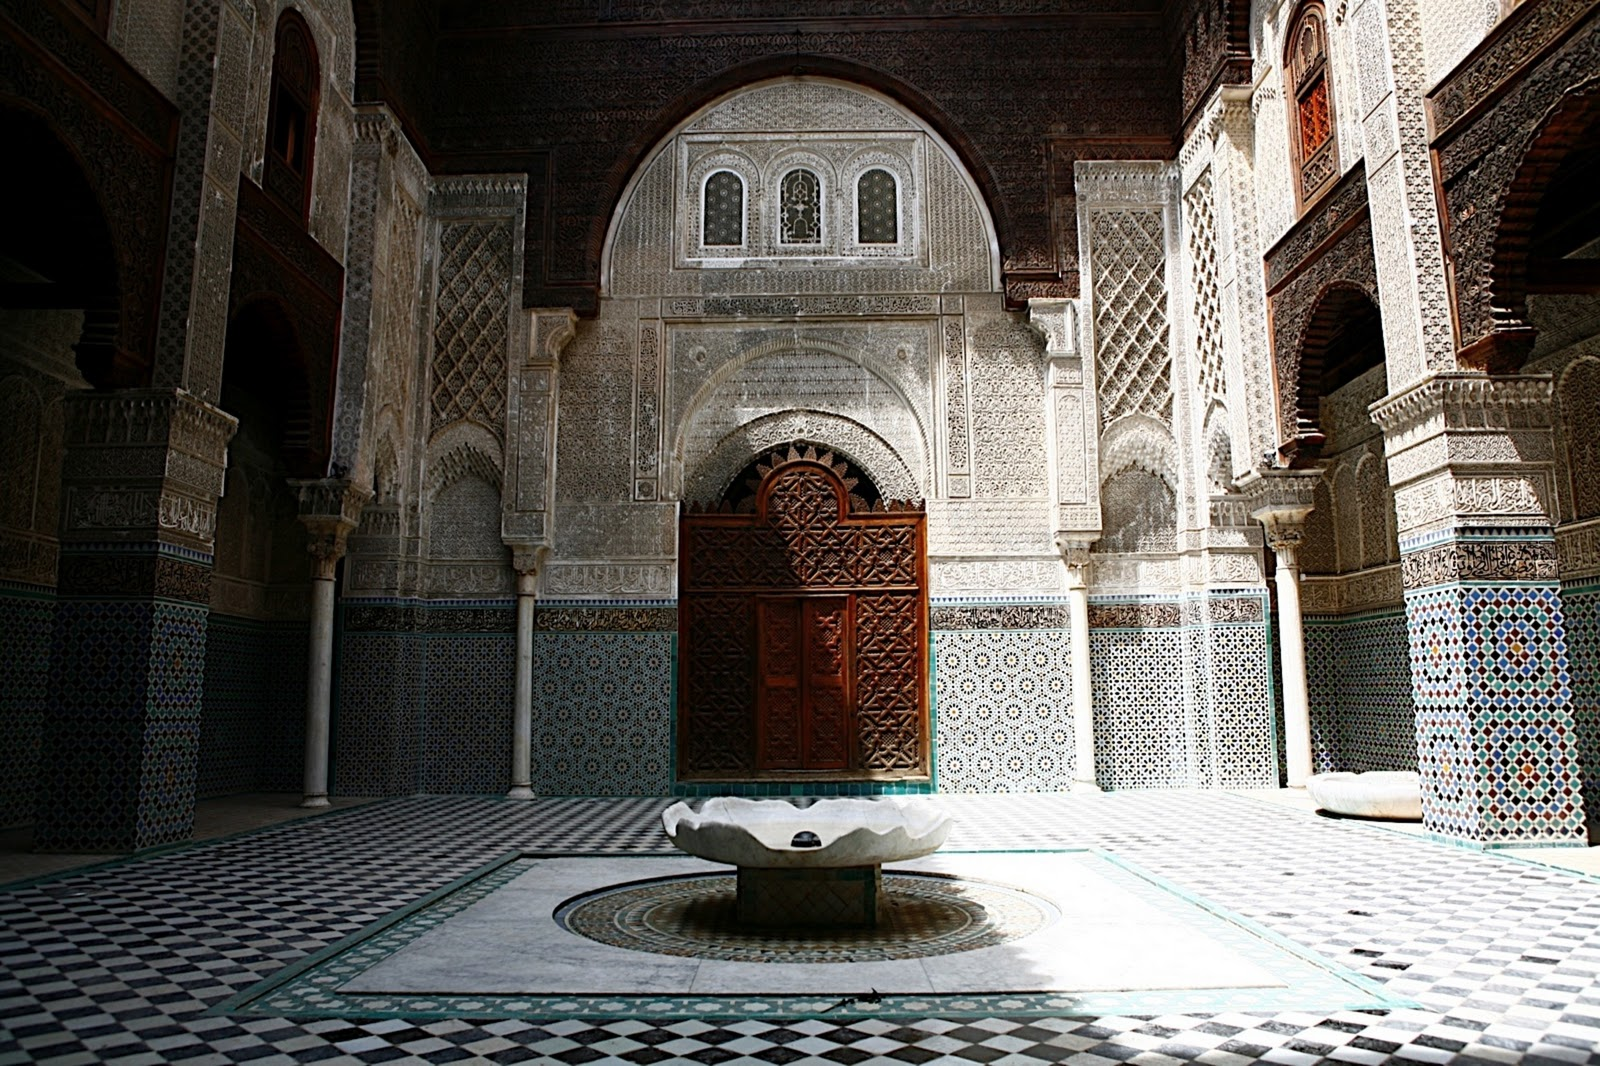 Imperial Cities Tour of Morocco, Fez, Al-Attarine Madrasa